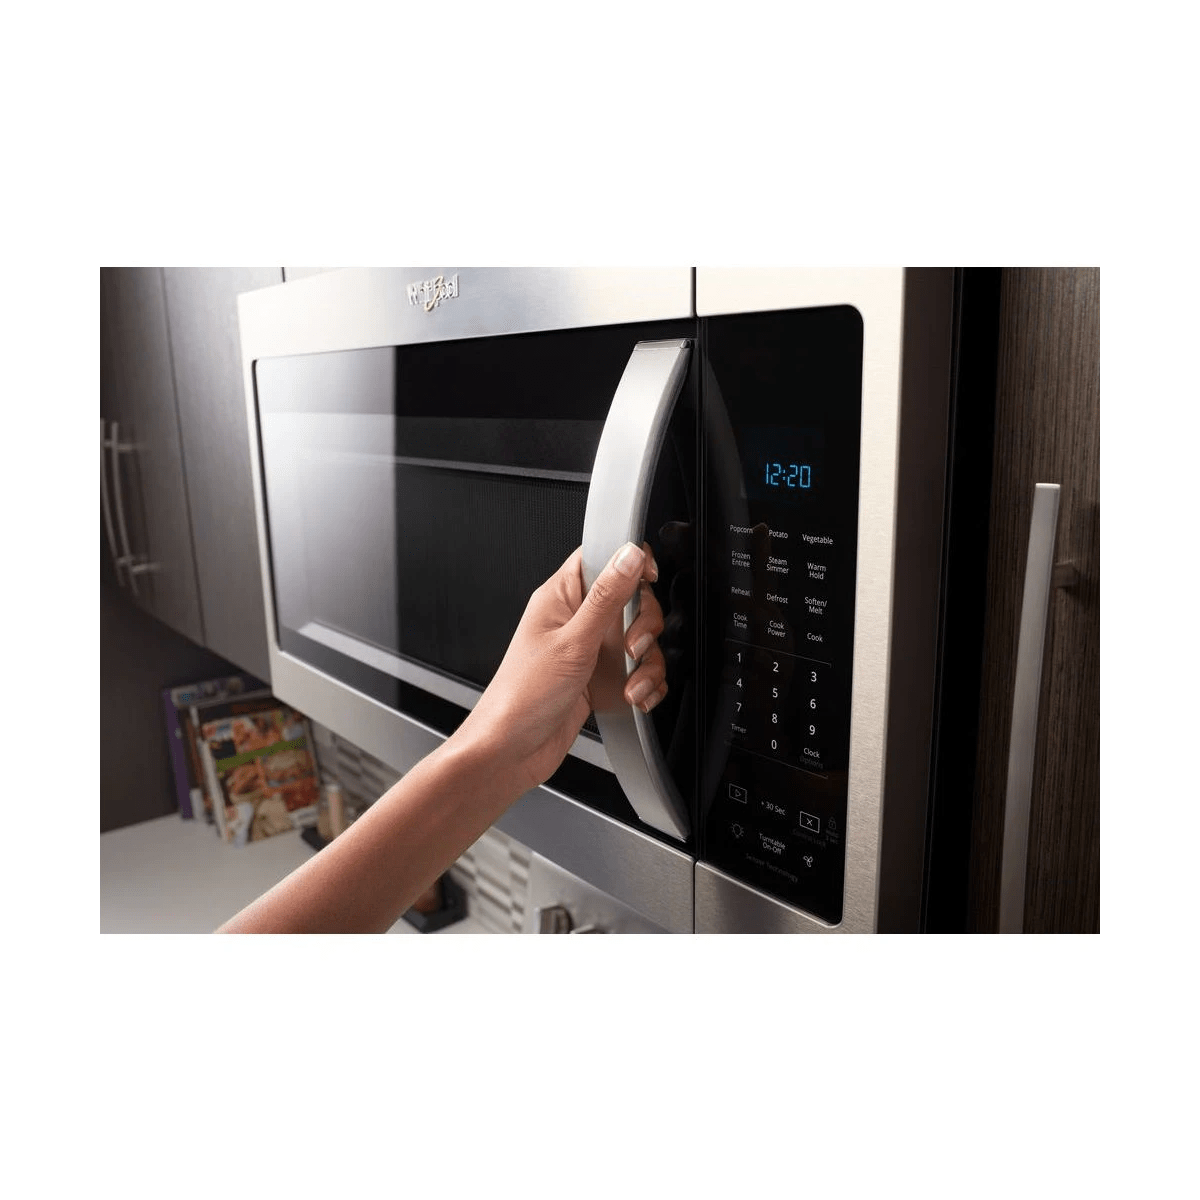 whirlpool microwave ovens cooking